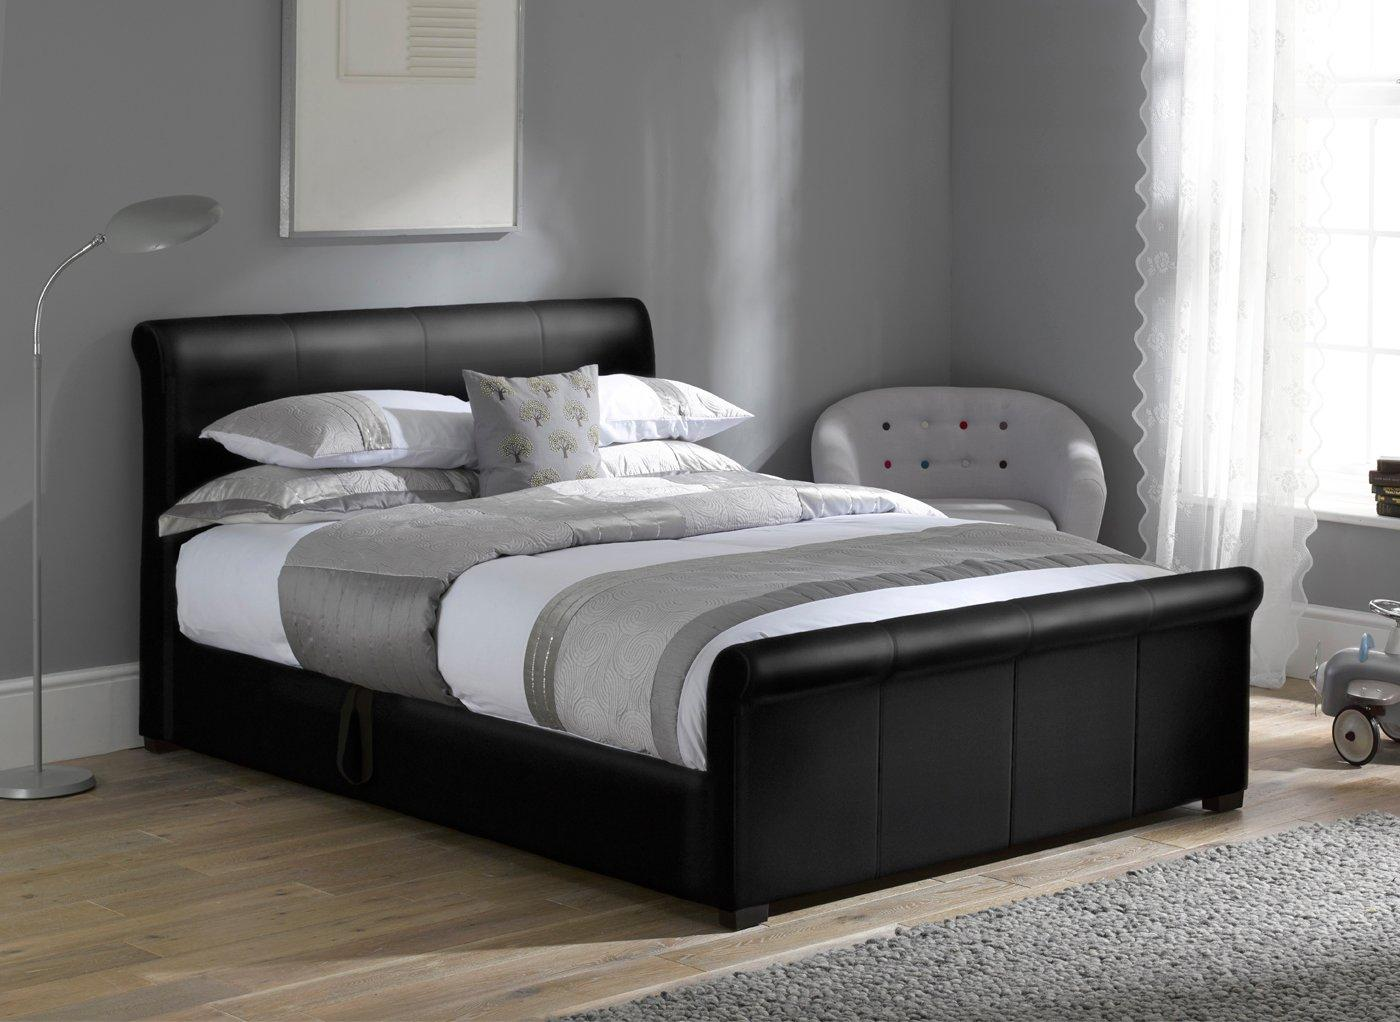 Wilson Black Fabric Ottoman Bed Frame 4'0 Small double